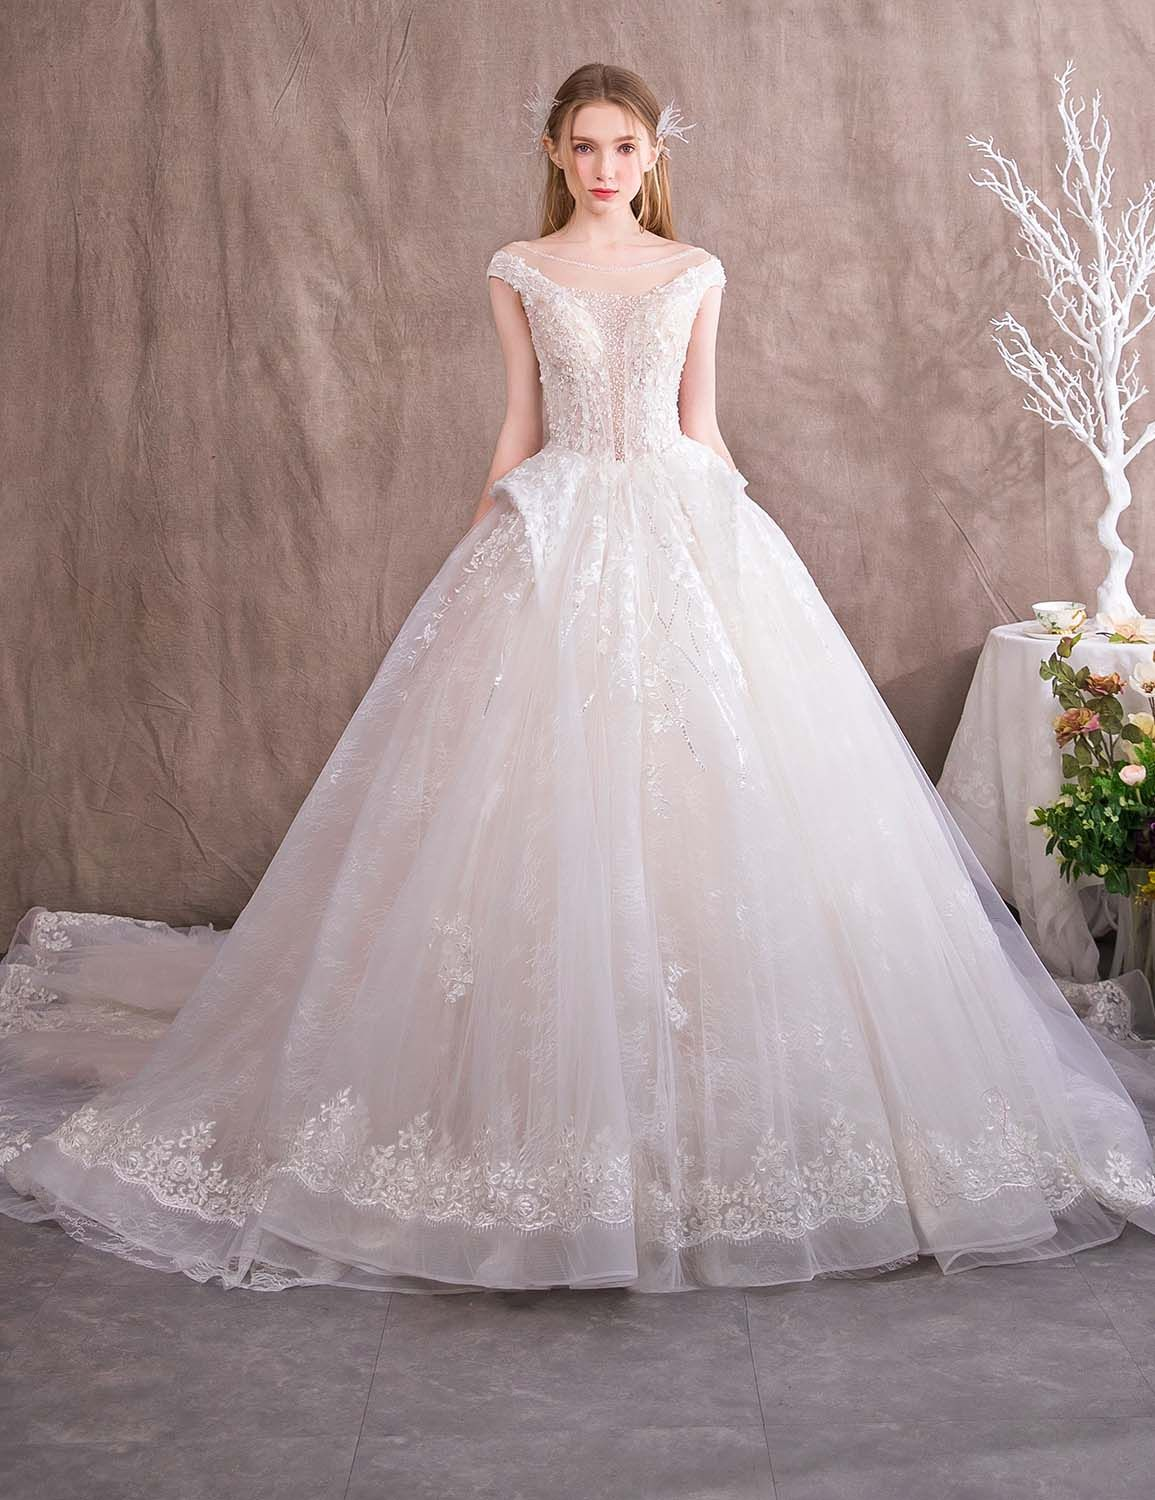 # Bridal Fashion2020 # Brutkleid2020 # Vintage <Boho # Wedding2020 # Bridal Fashion2020